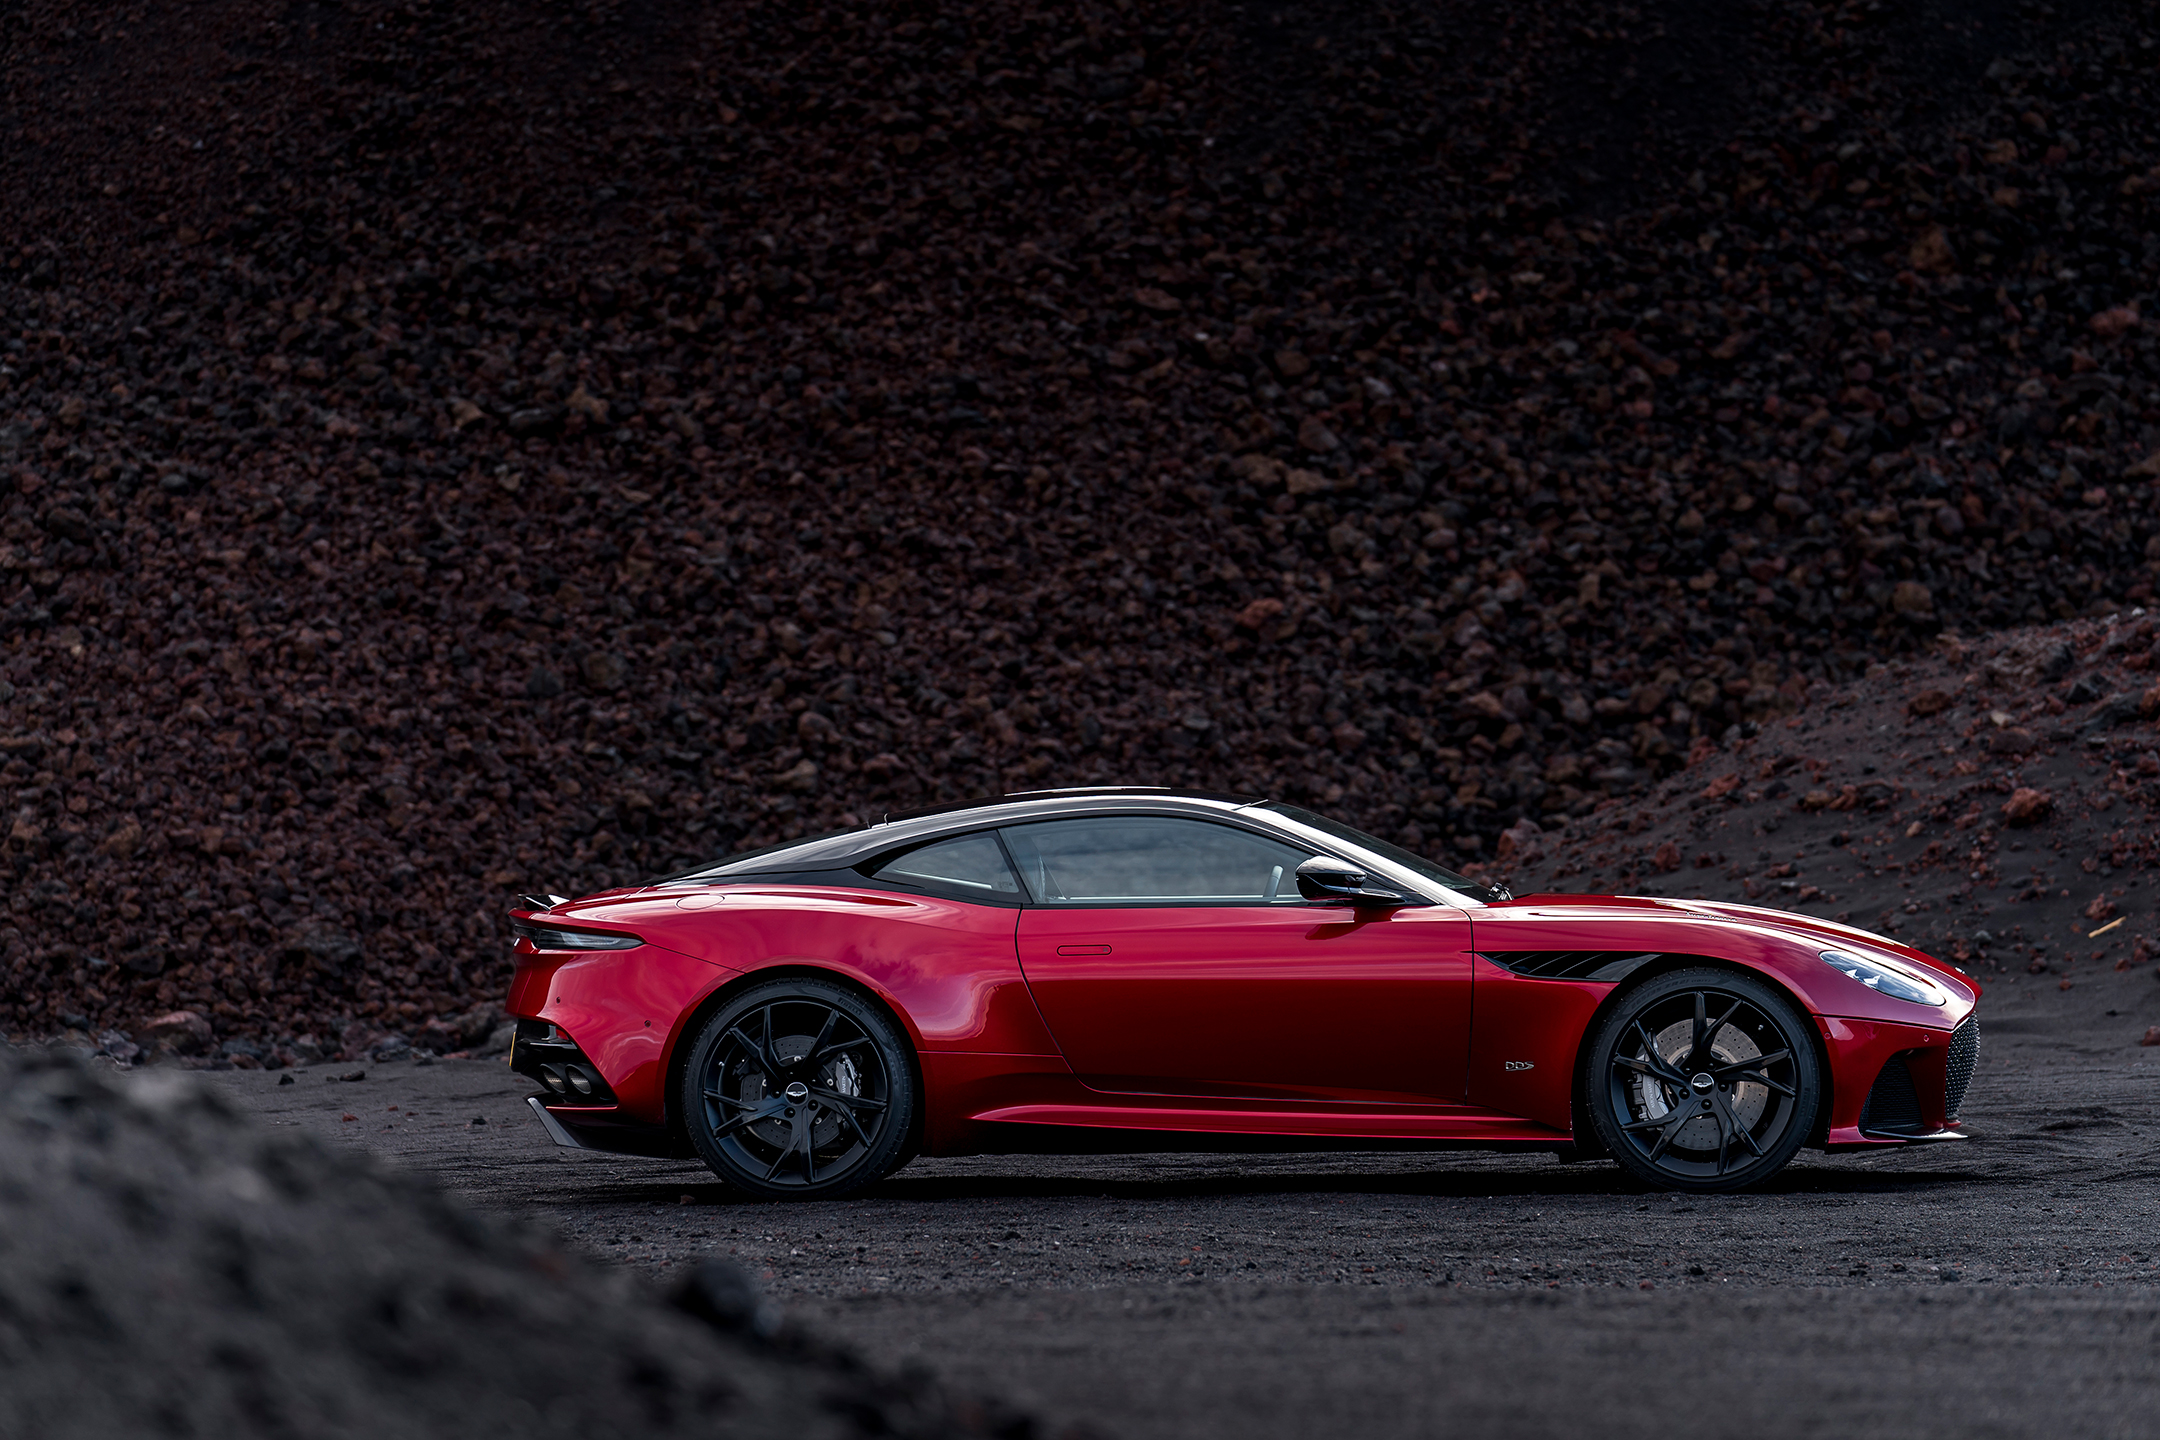 Aston Martin DBS Superleggera - 2018 - side-face / profil